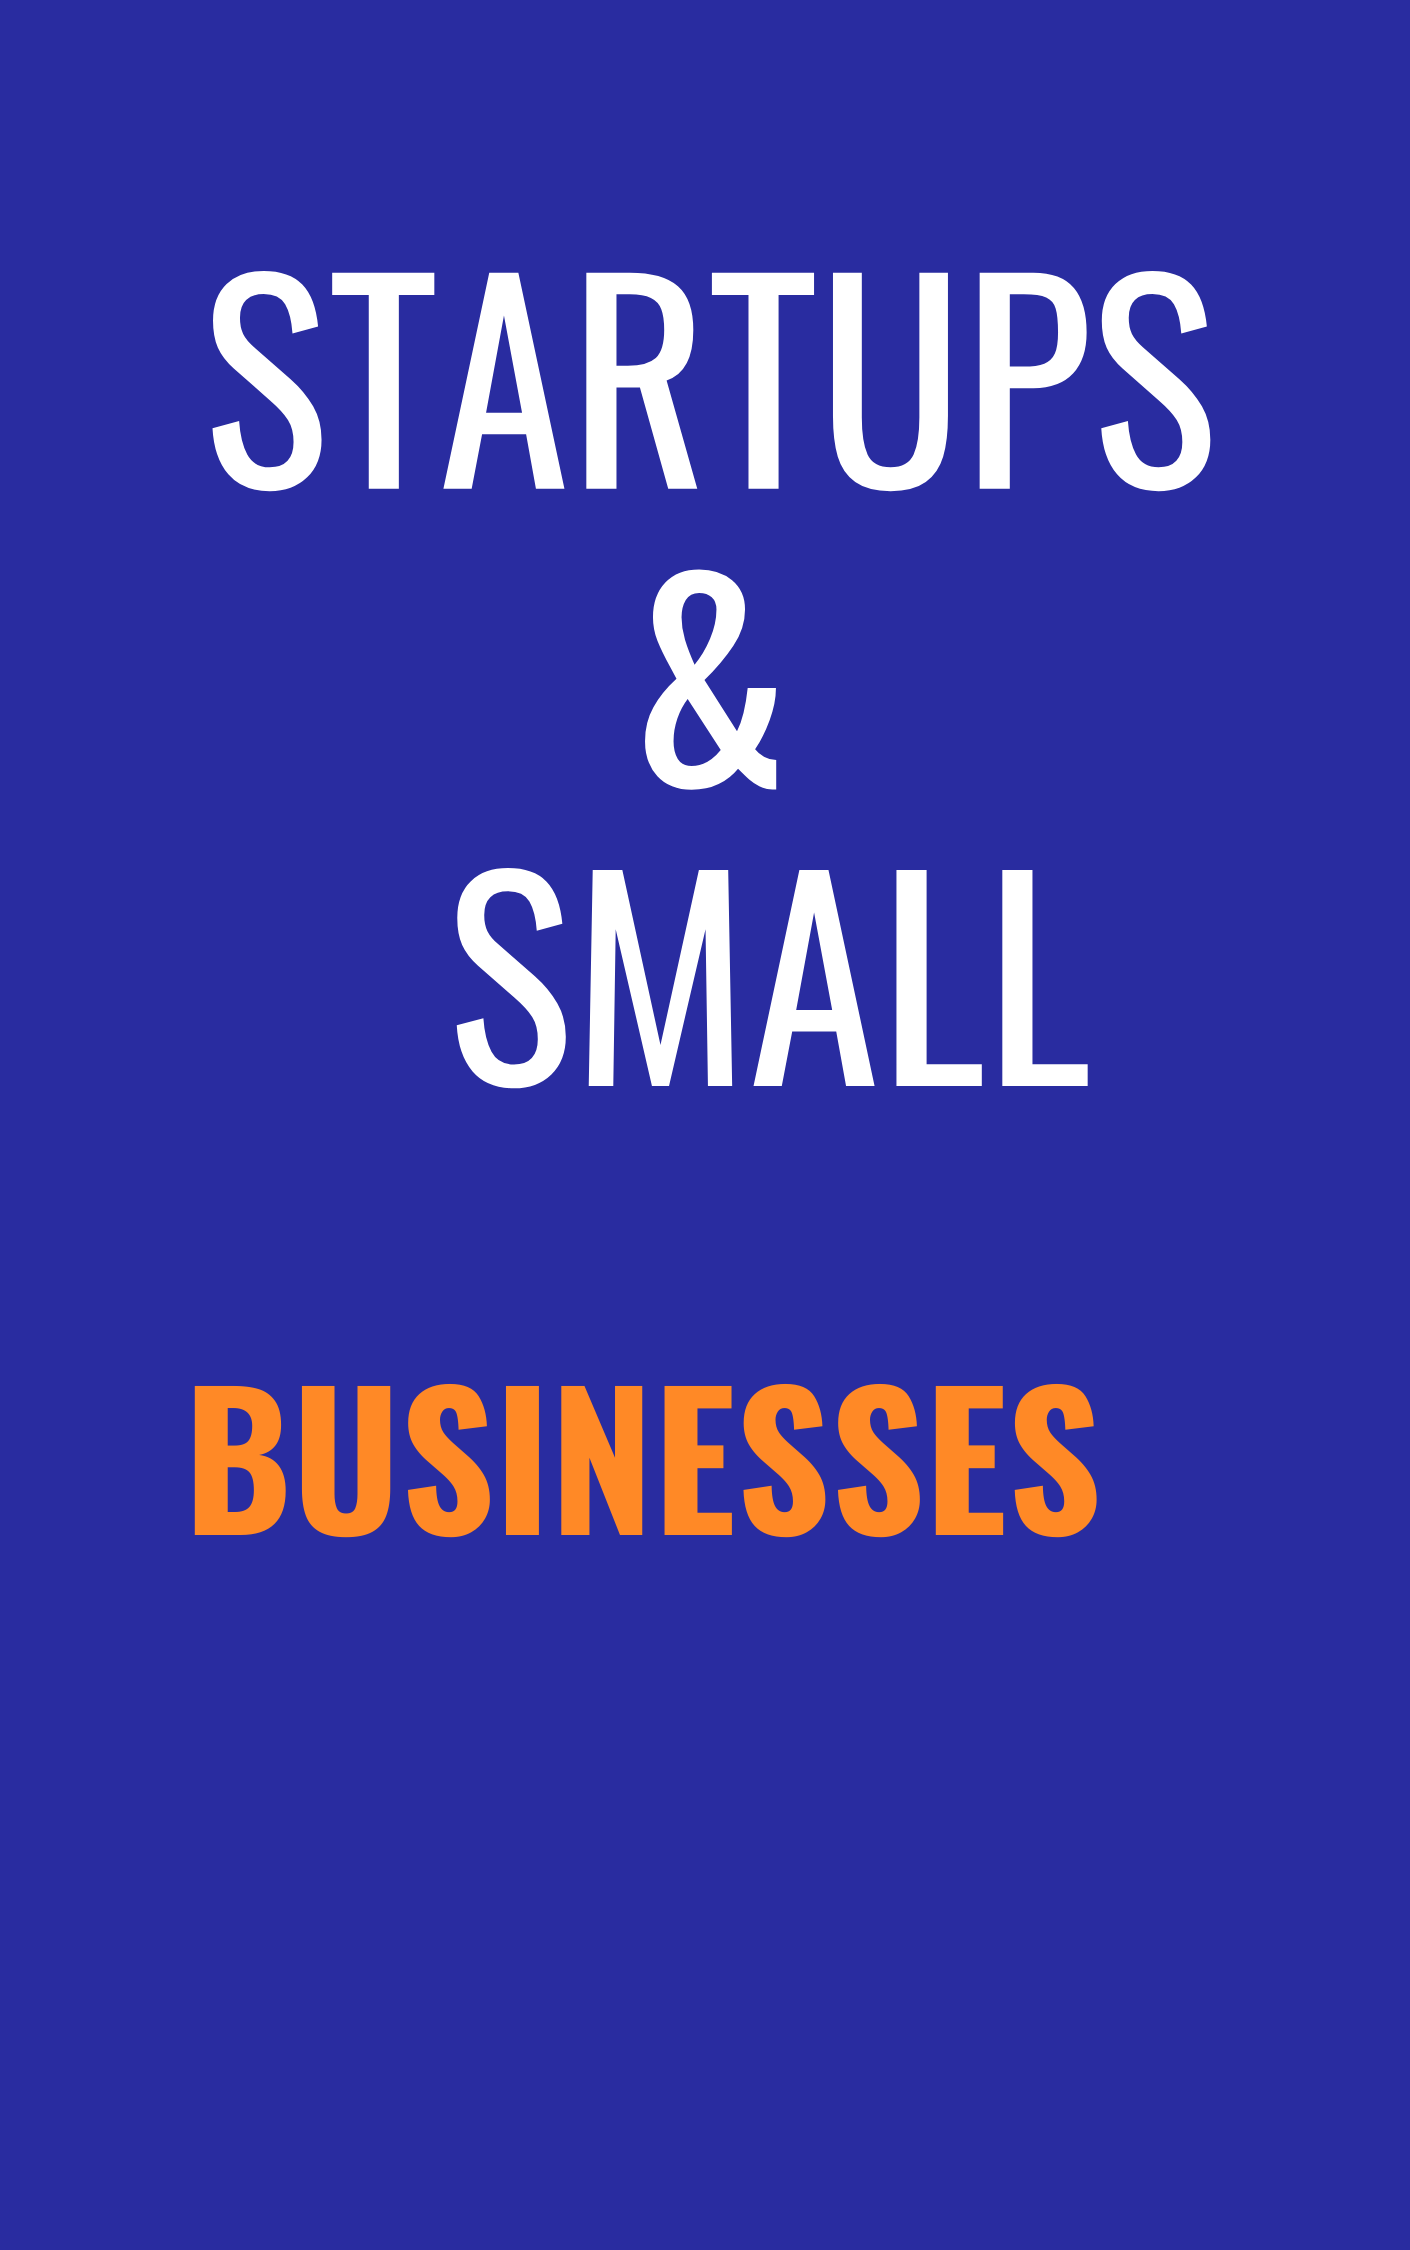 How to Start Small Businesses  ?